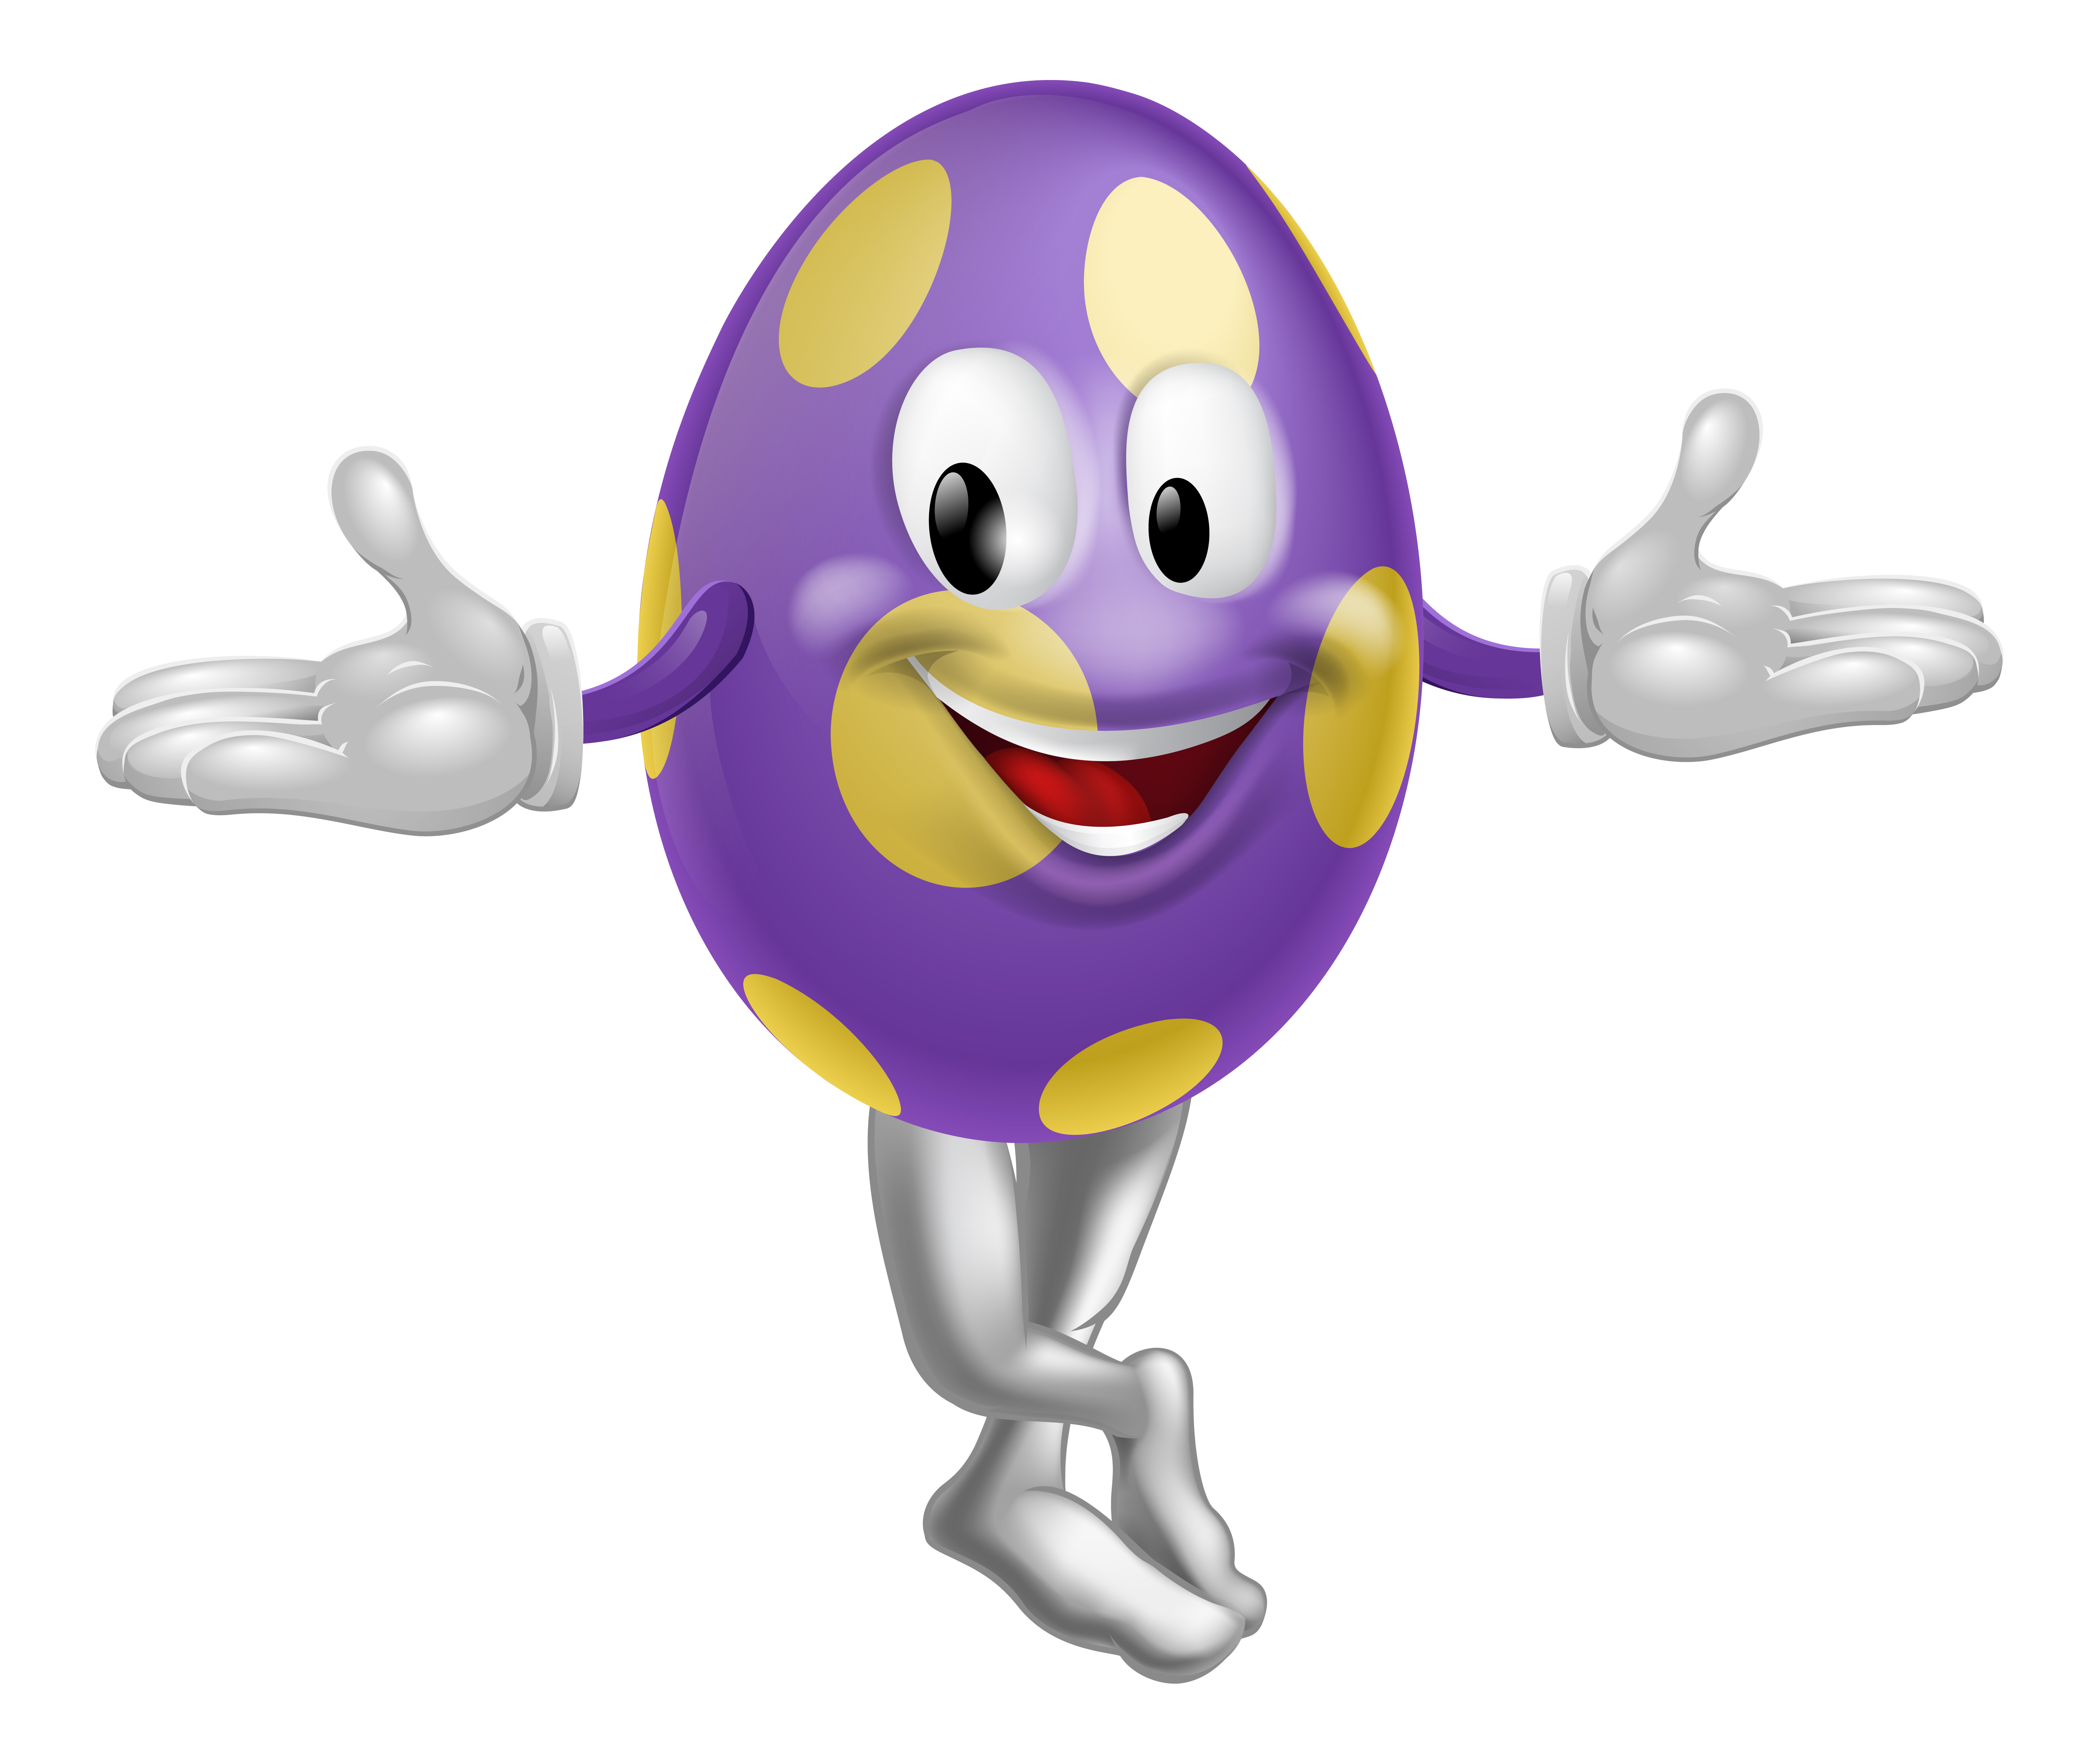 the mascot of the giant easter egg hunt melbourne